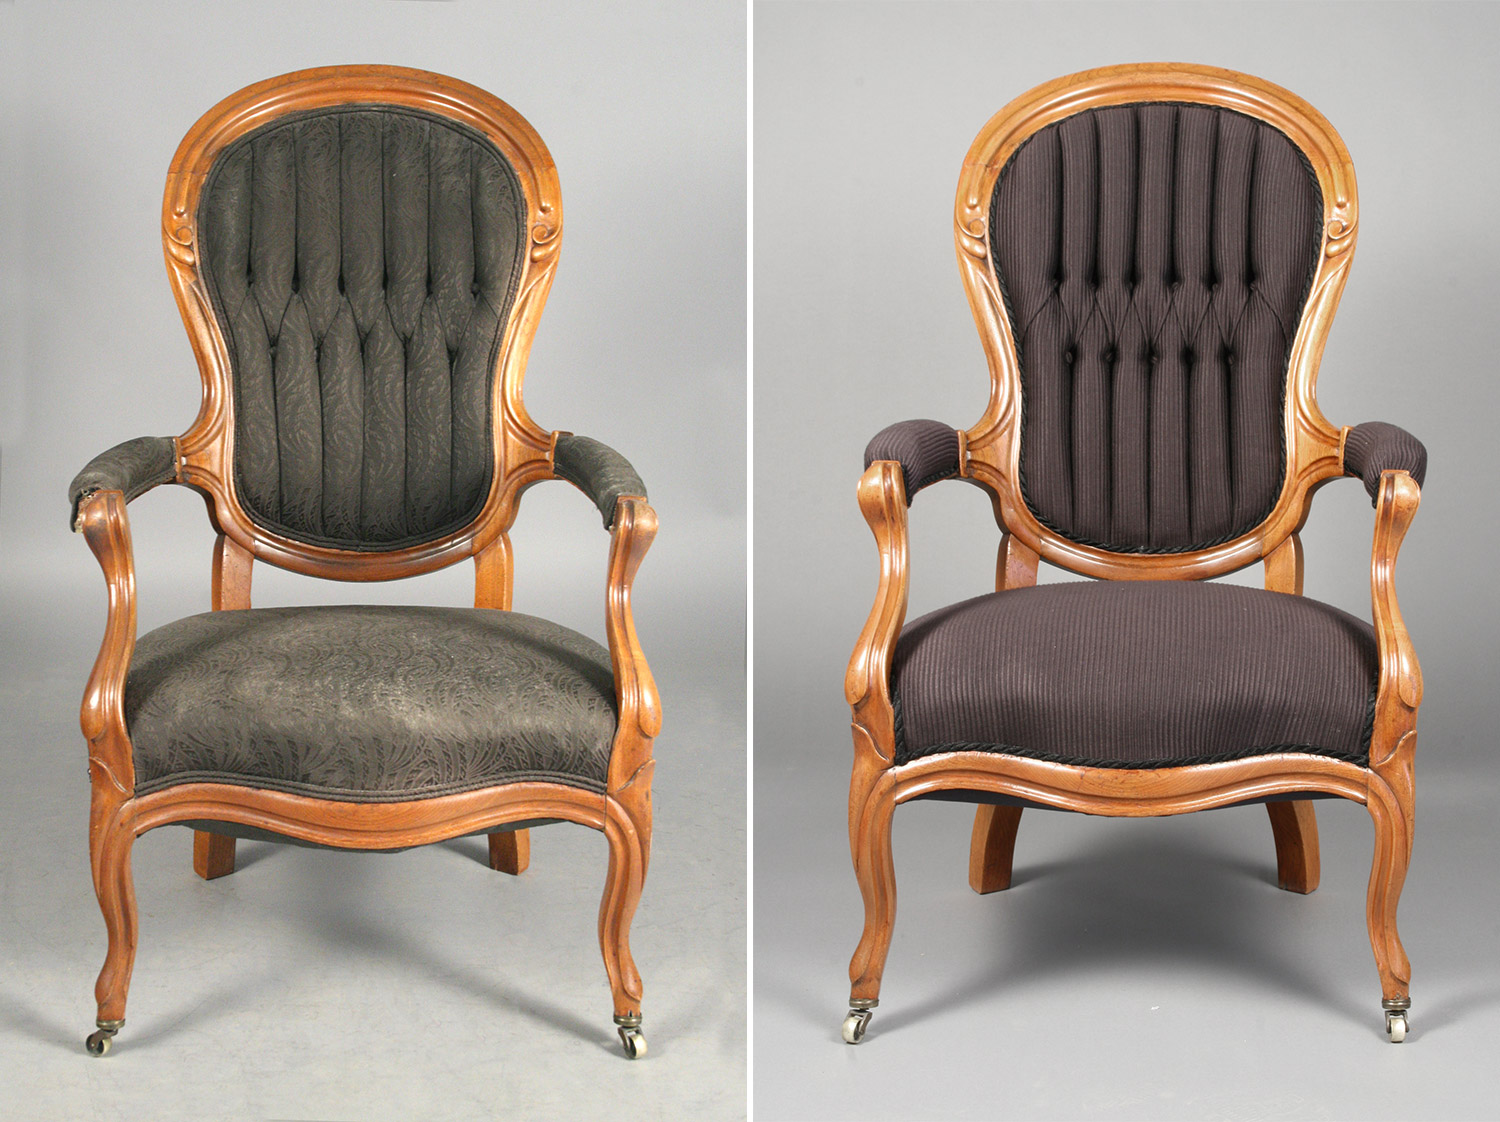 Victorian armchair before and after re-upholstery